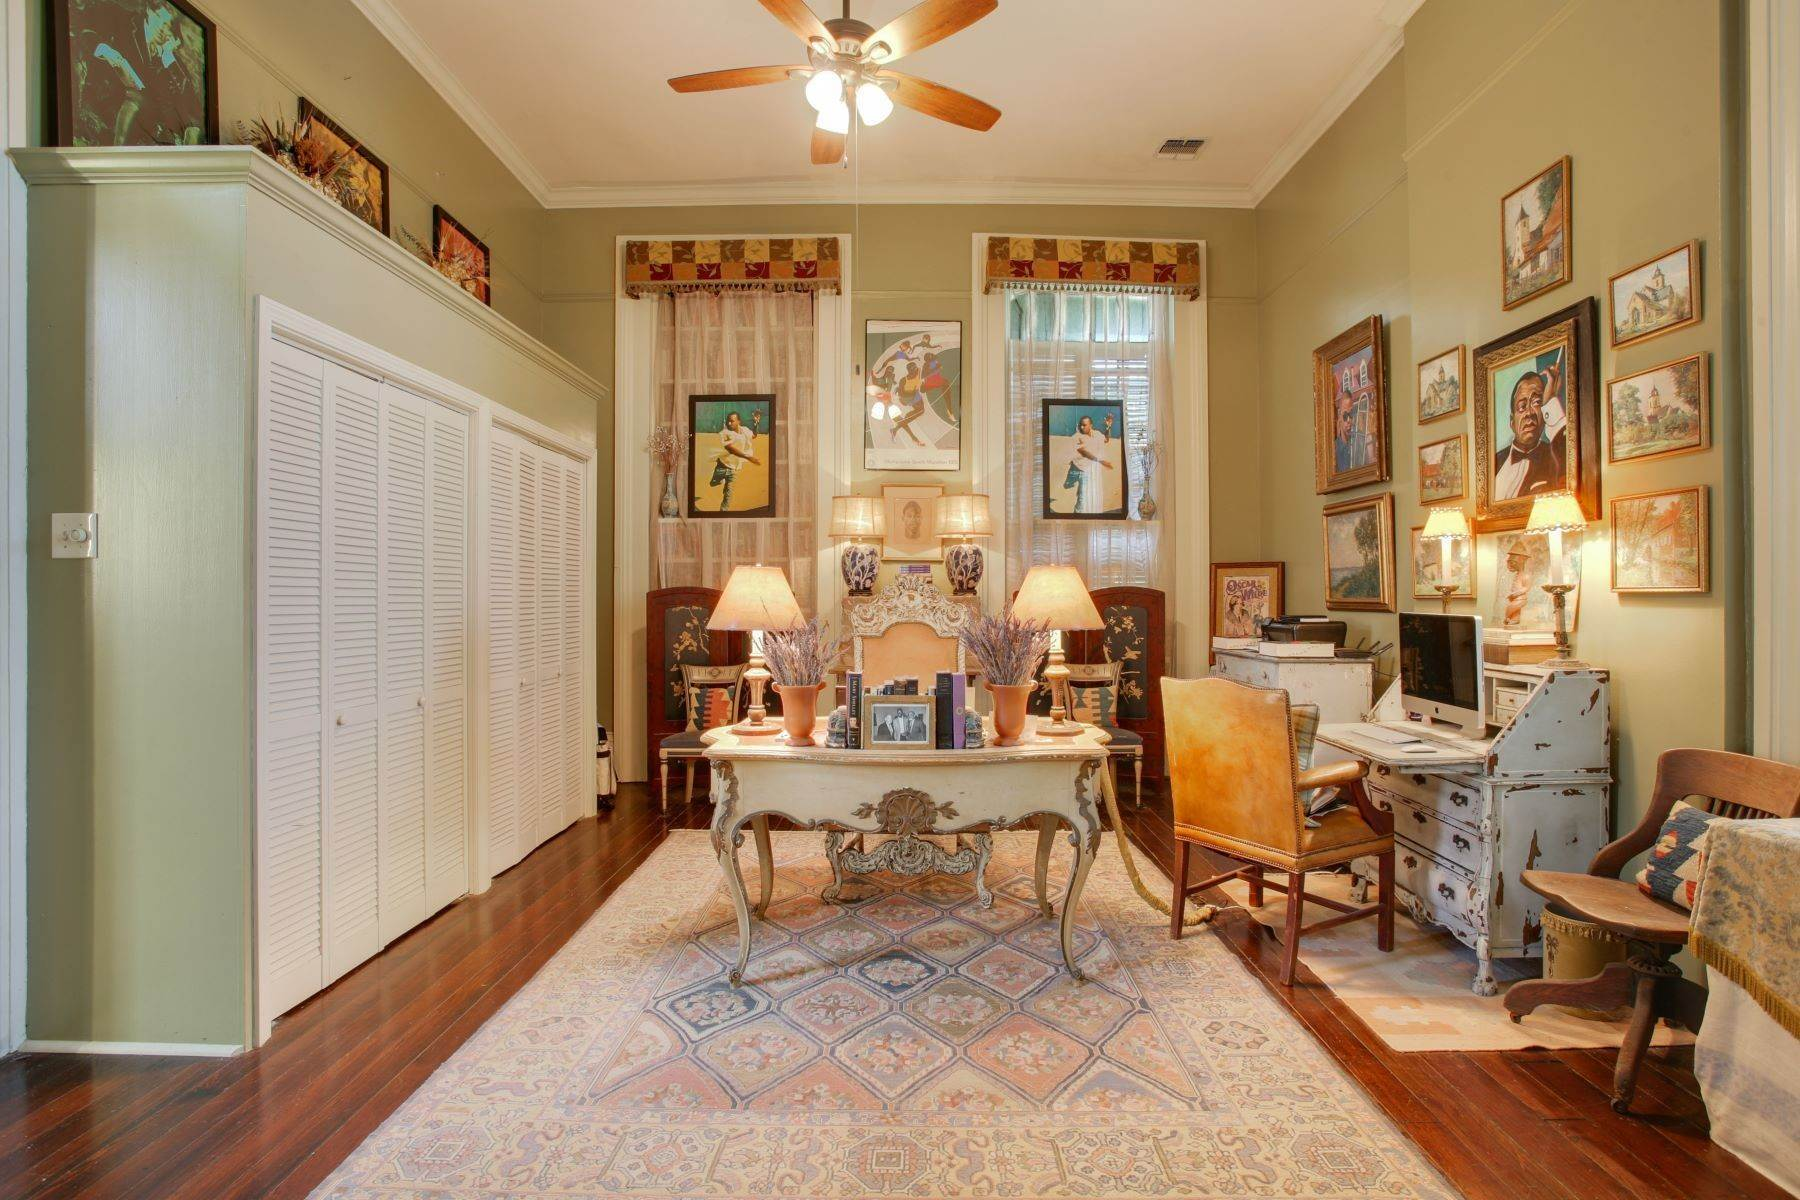 14. Single Family Homes for Sale at 1216 CAMP Street 1216 Camp St New Orleans, Louisiana 70130 United States